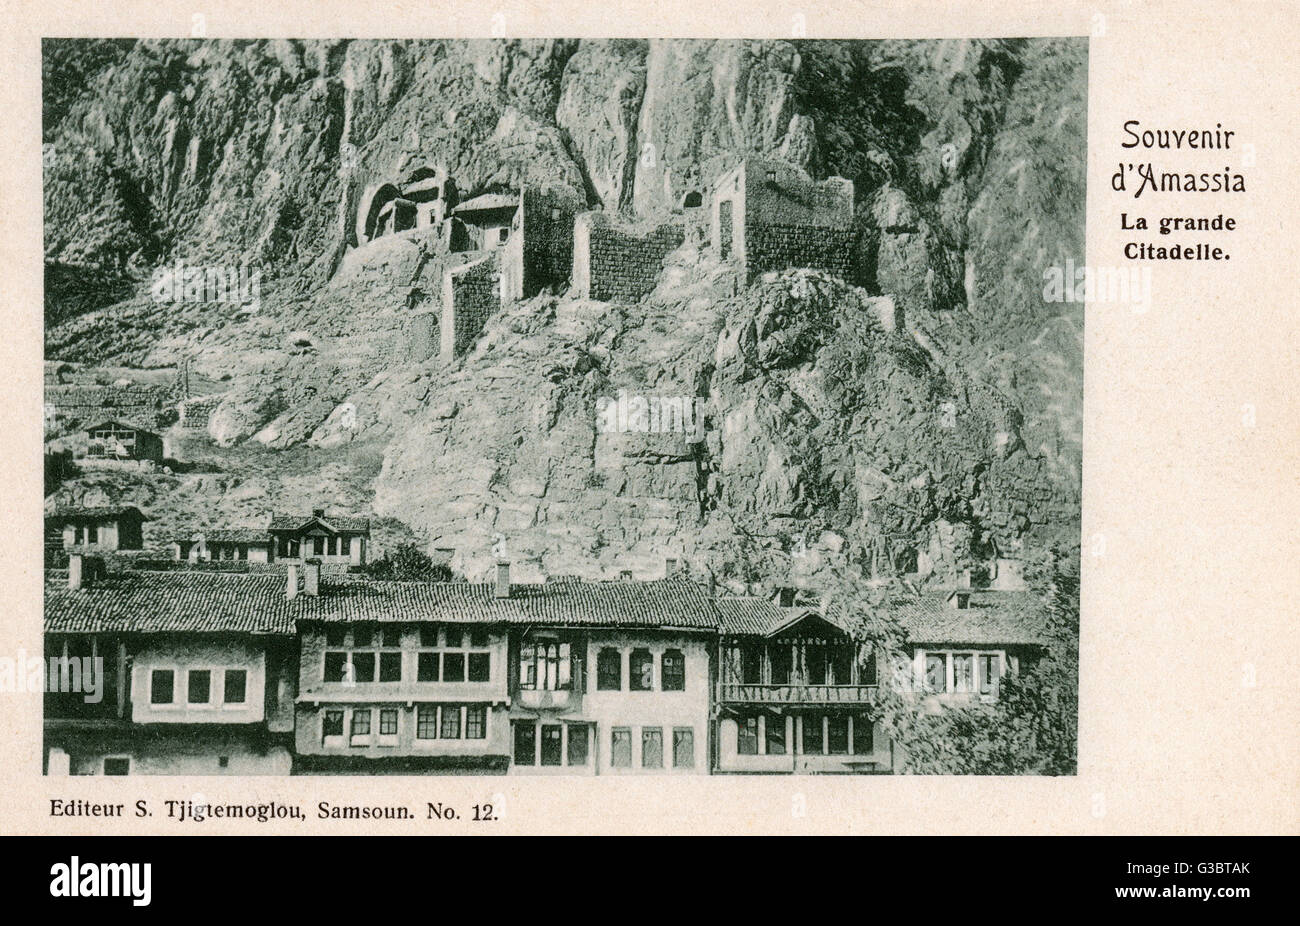 An extremely rare postcard showing Amasya, Turkey. Mountainous city on the Black Sea coast famous for apples and - Stock Image